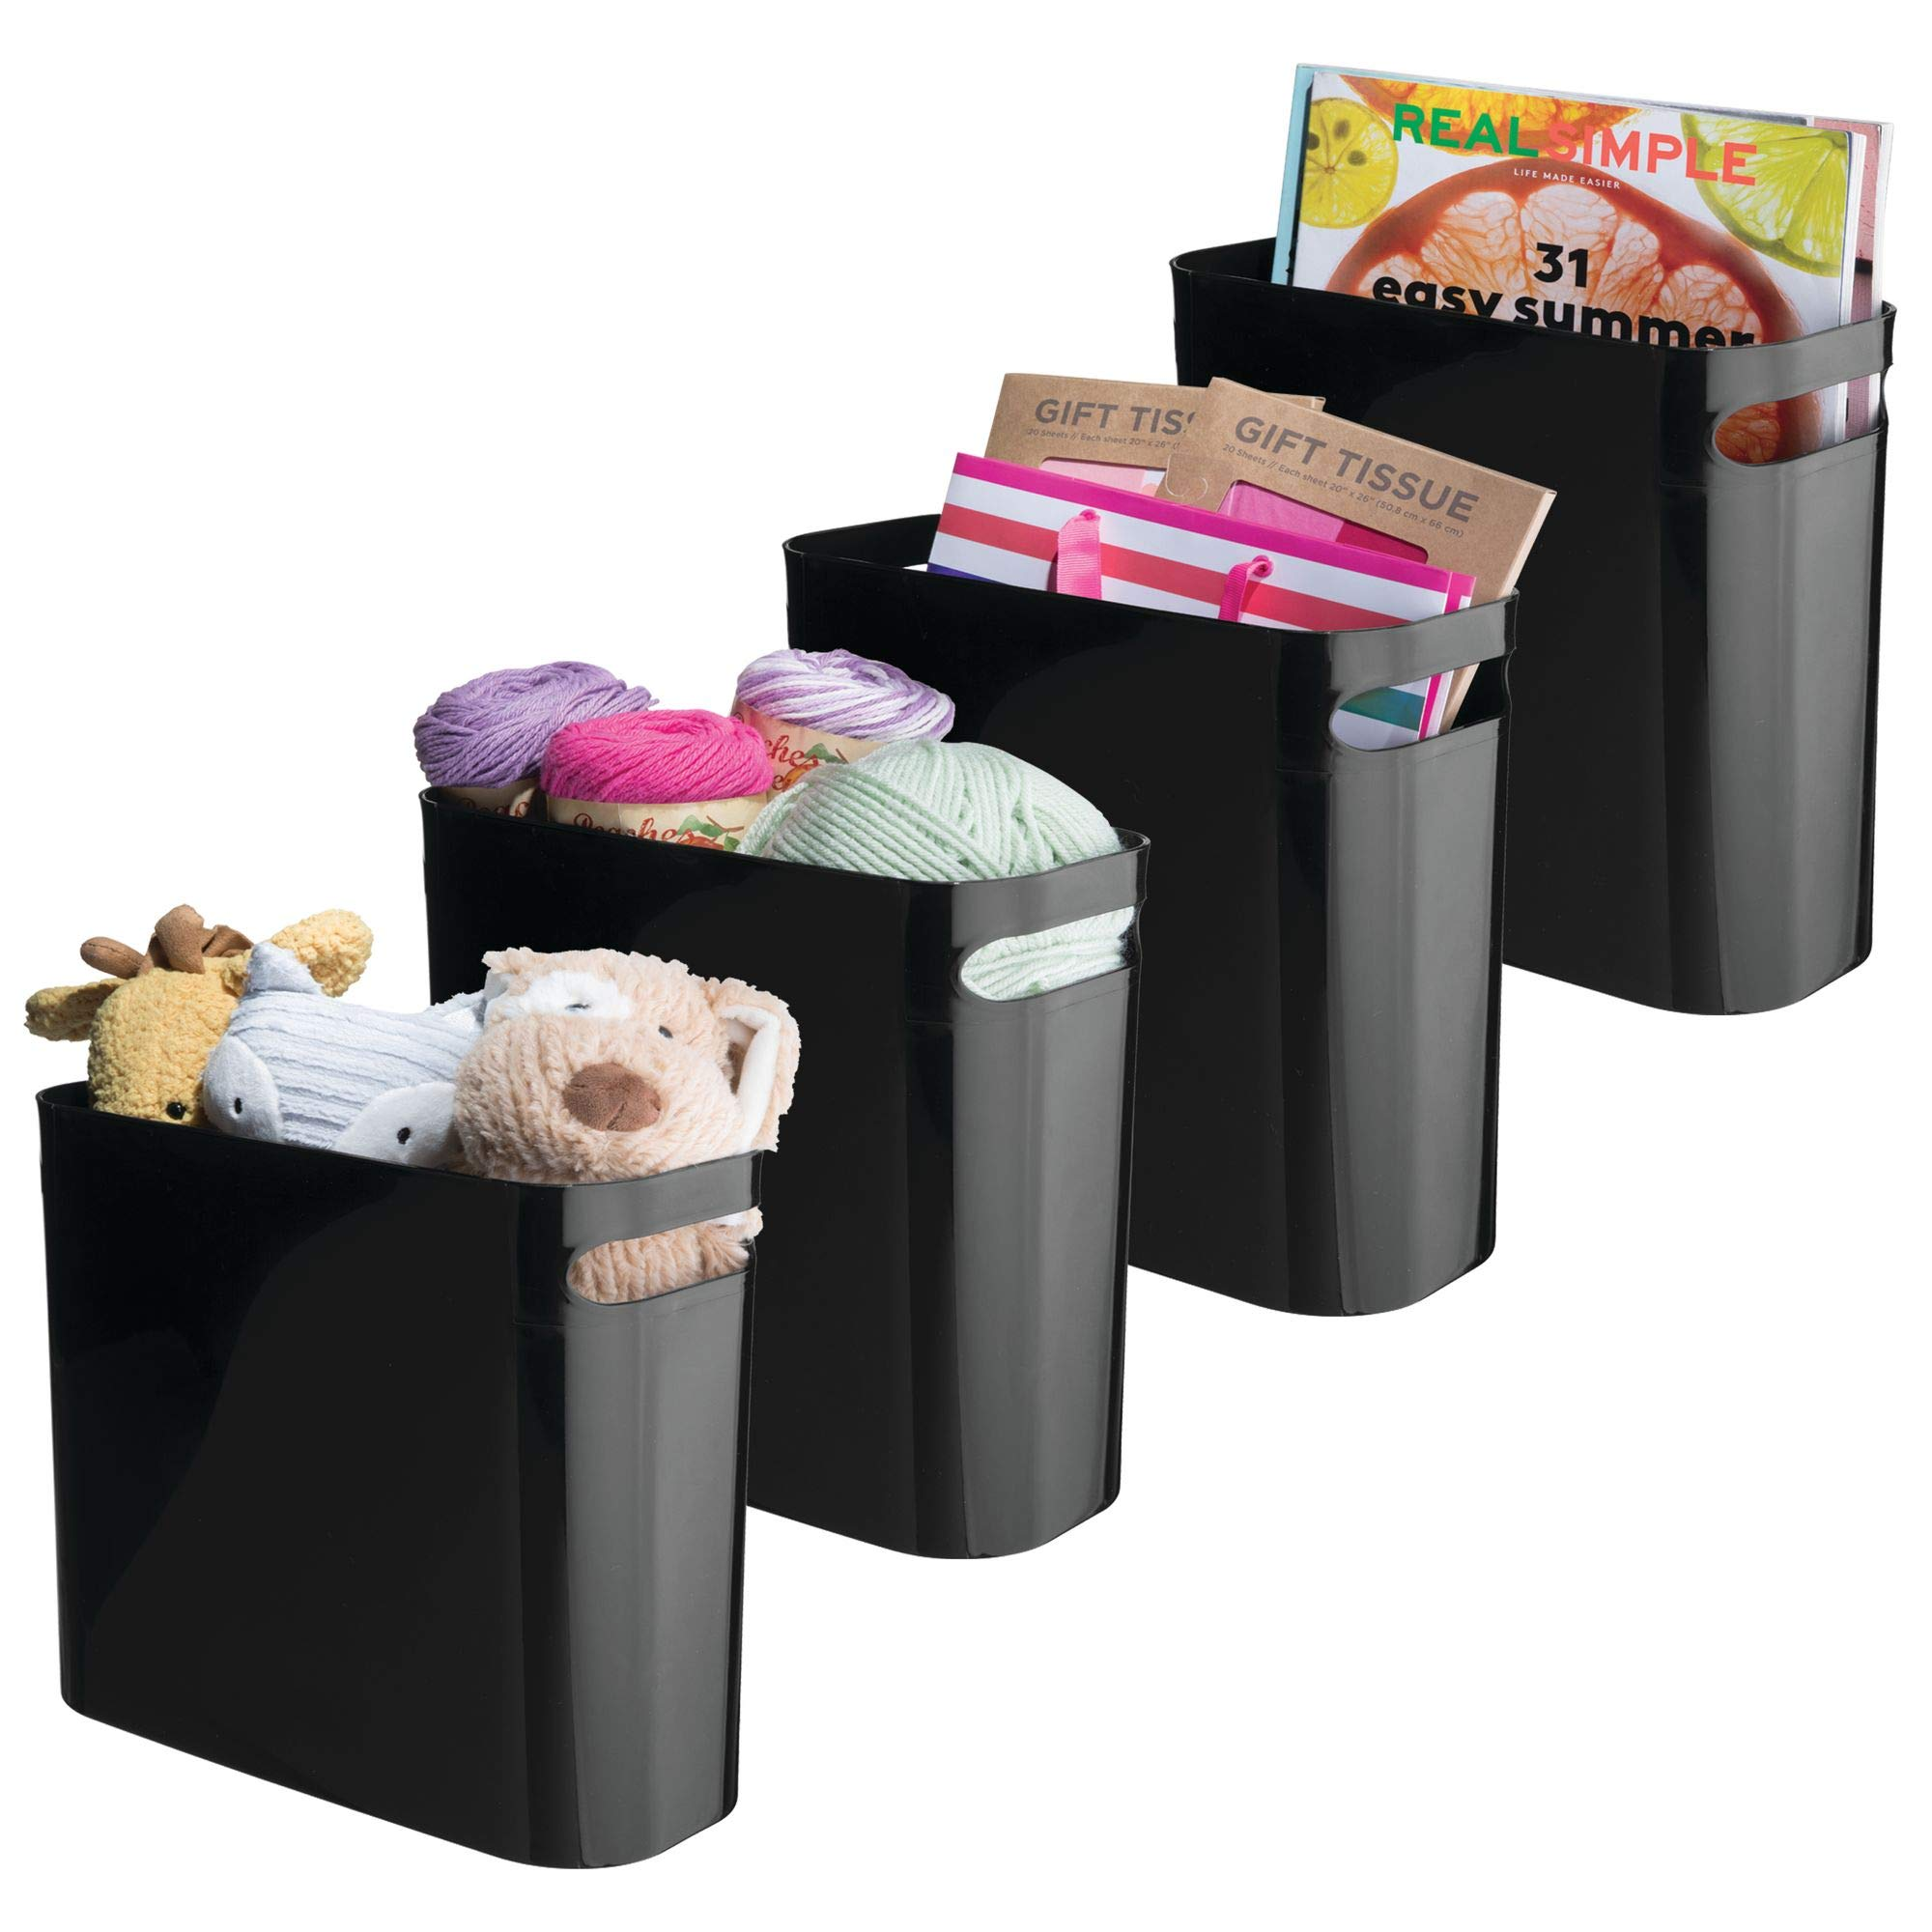 mDesign Plastic Storage Organizer, Holder Bin Box with Handles - for Cube Furniture Shelving Organization for Closet, Kid's Bedroom, Bathroom, Home Office - 10.75'' x 5'' x 10'' high, 4 Pack - Black